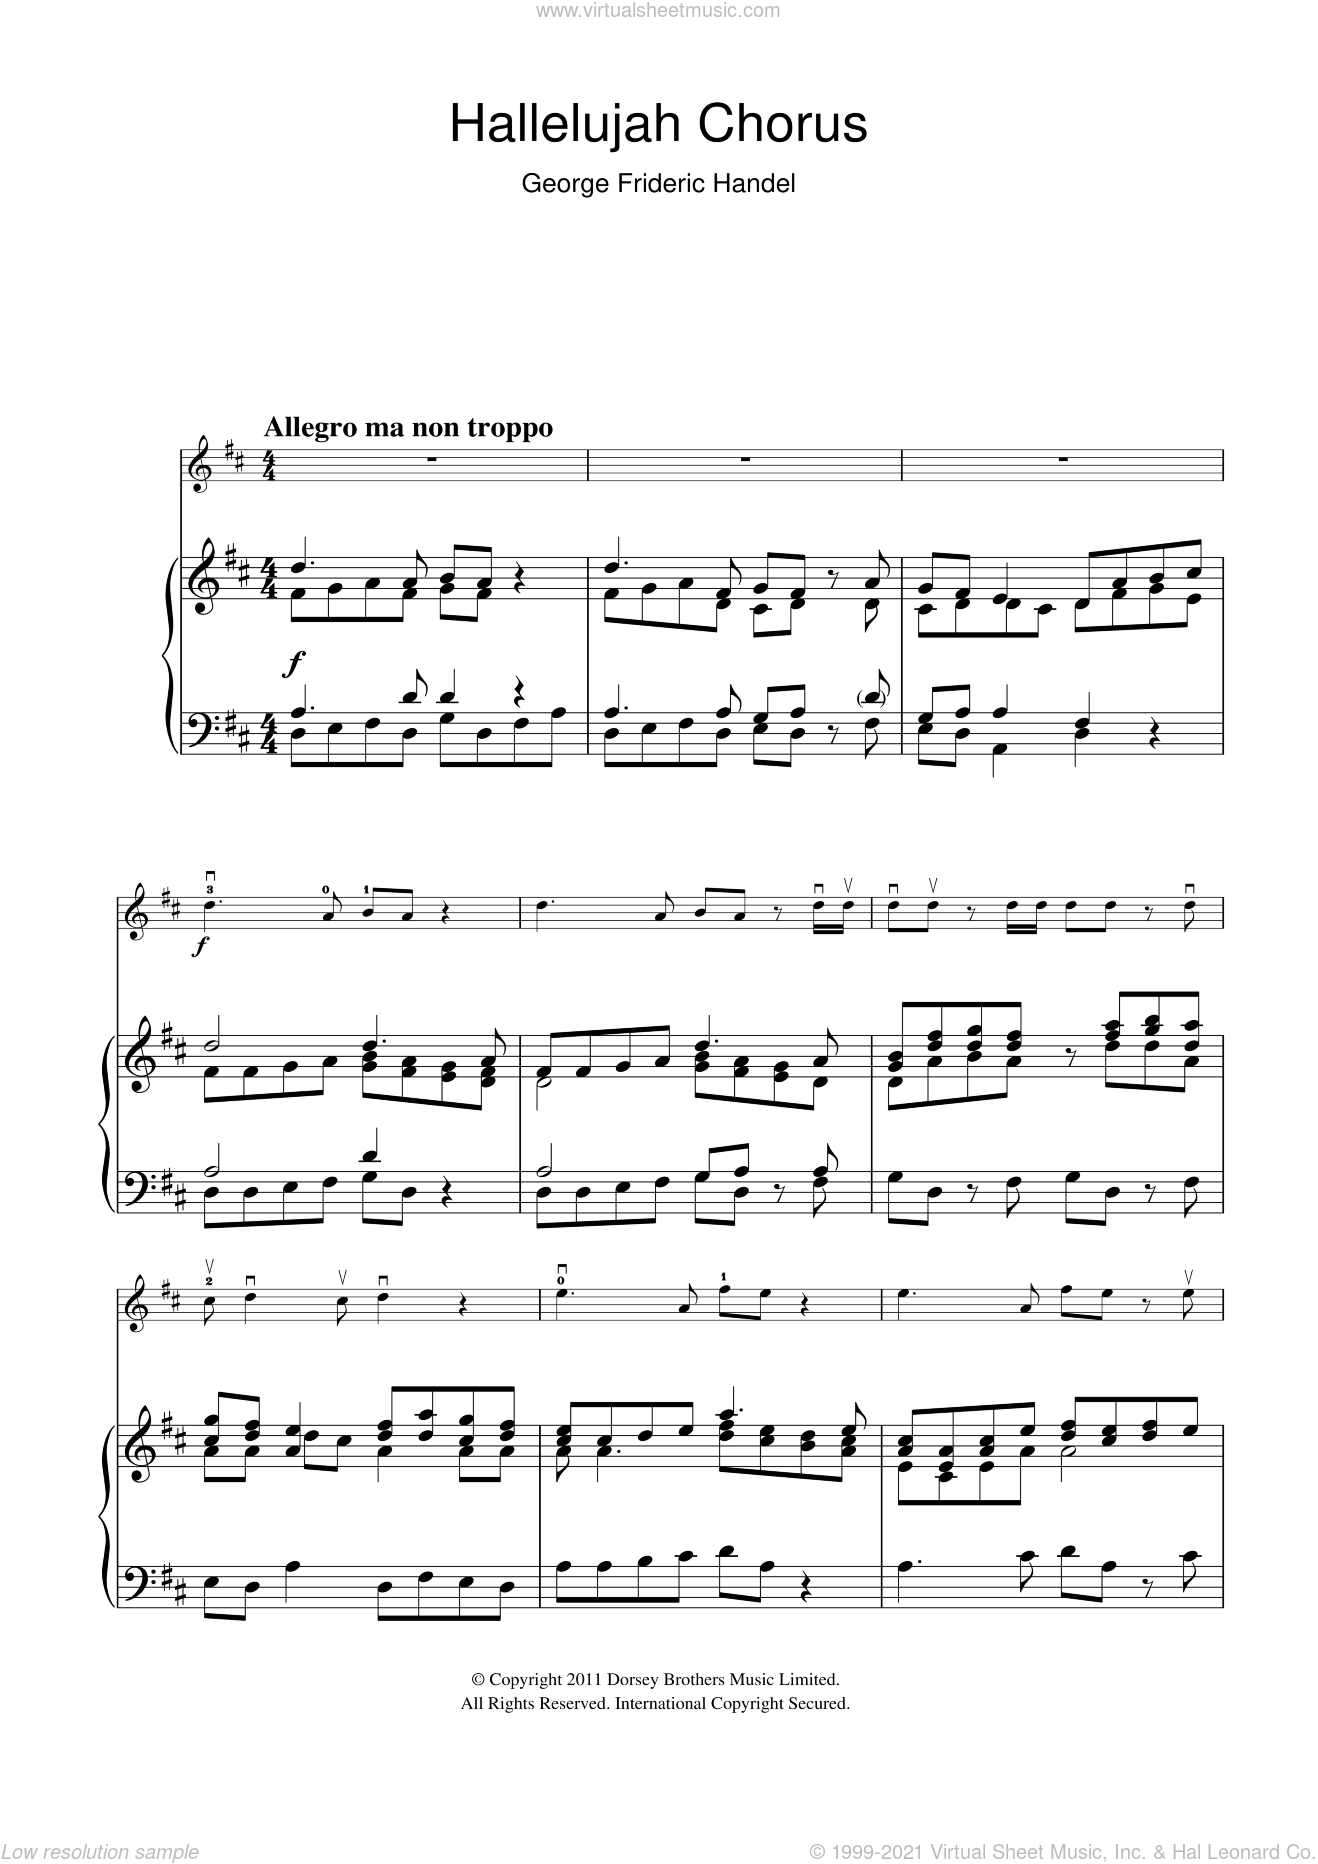 Hallelujah Chorus (from The Messiah) sheet music for violin solo by George Frideric Handel. Score Image Preview.